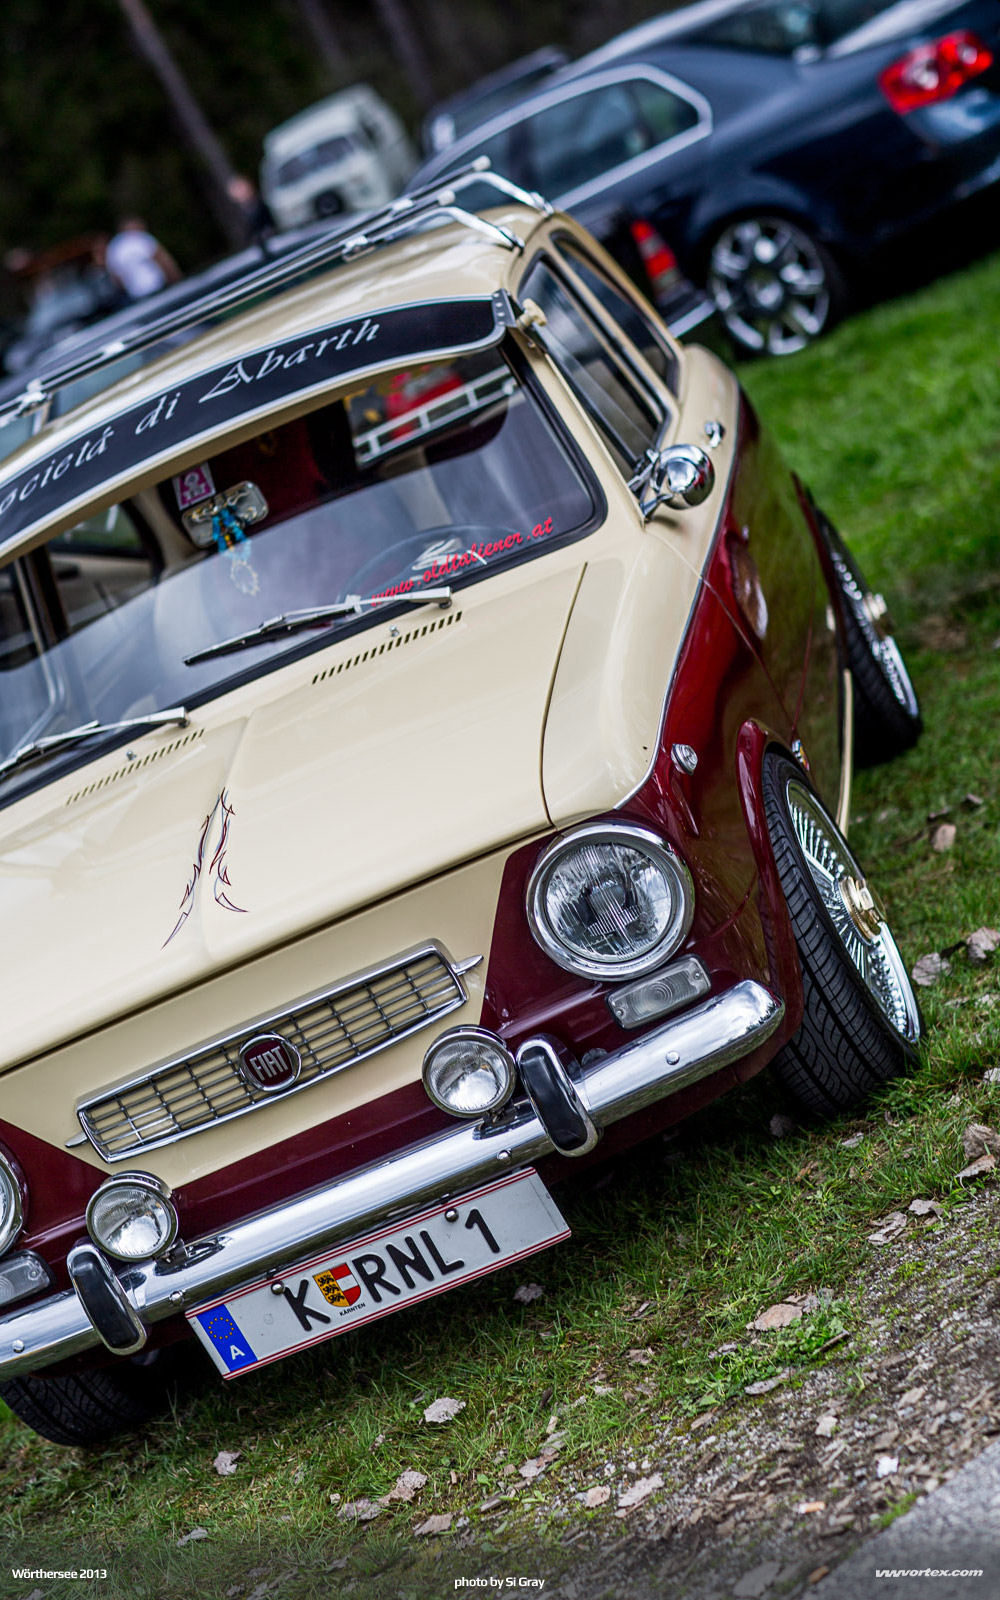 worthersee-2013-gallery-si-gray-061